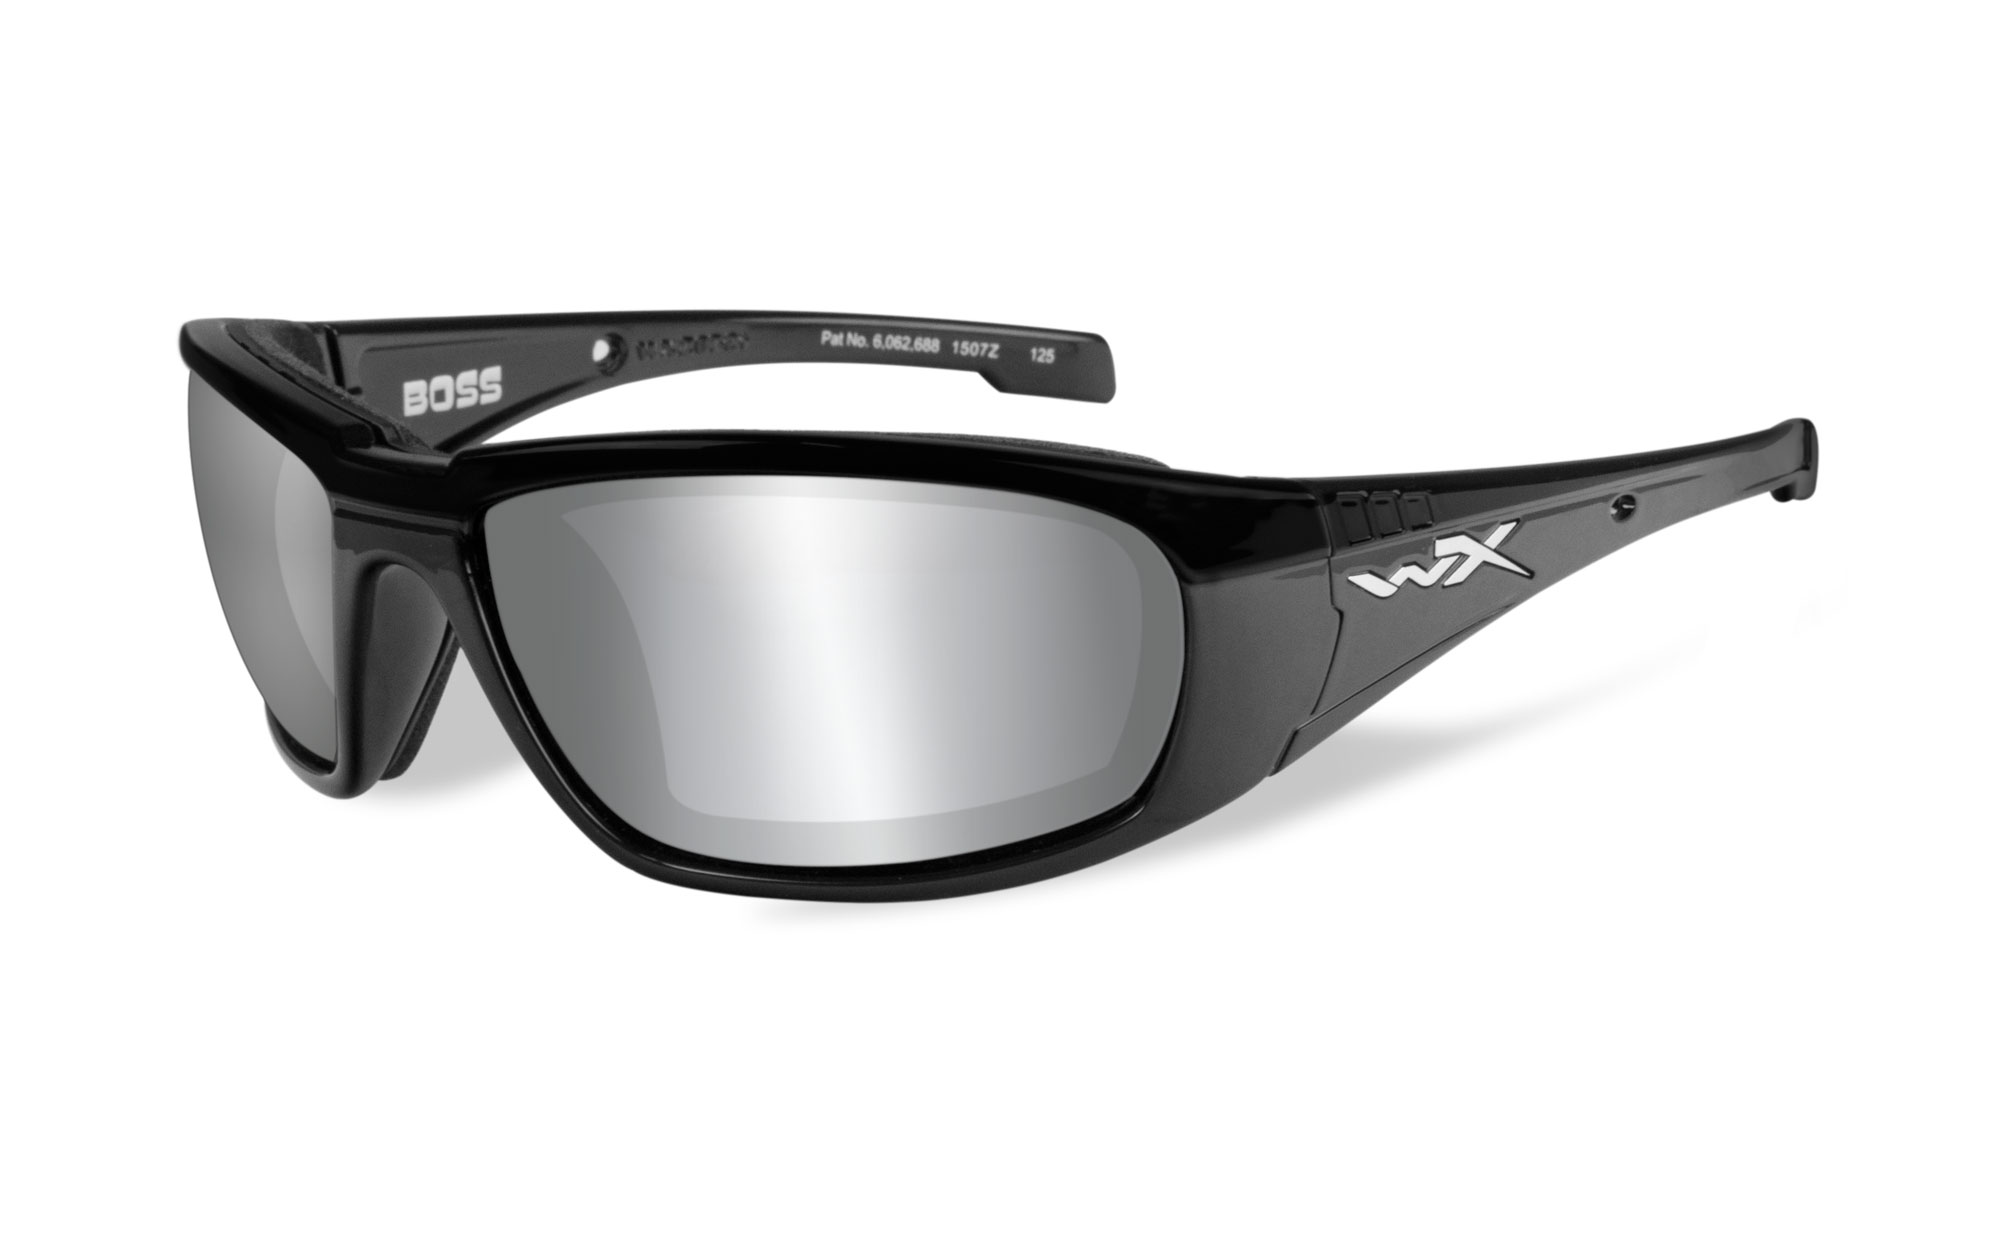 Wiley X  WX BOSS Sunglasses